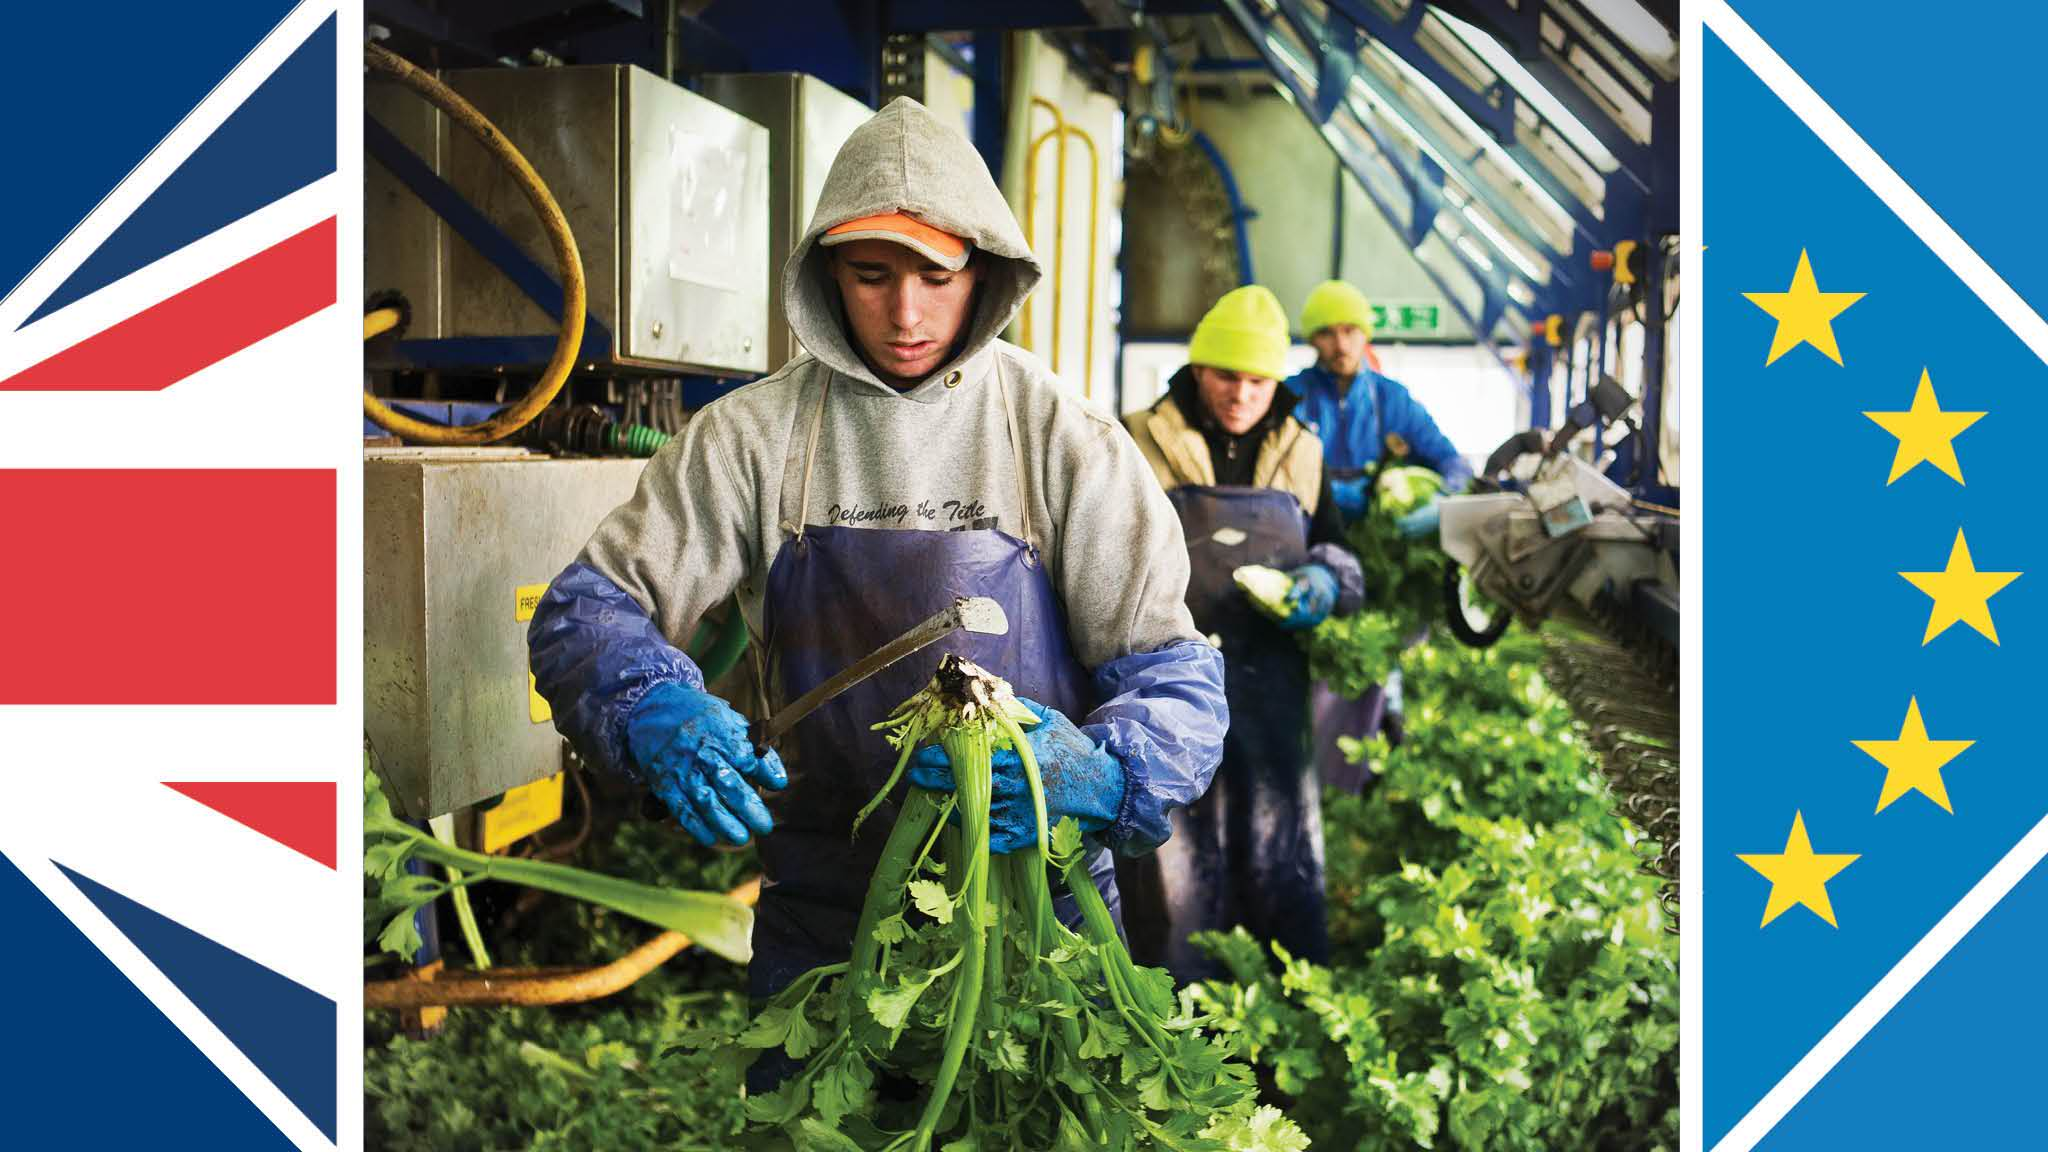 uk farms and factories will compete for migrants after brexit